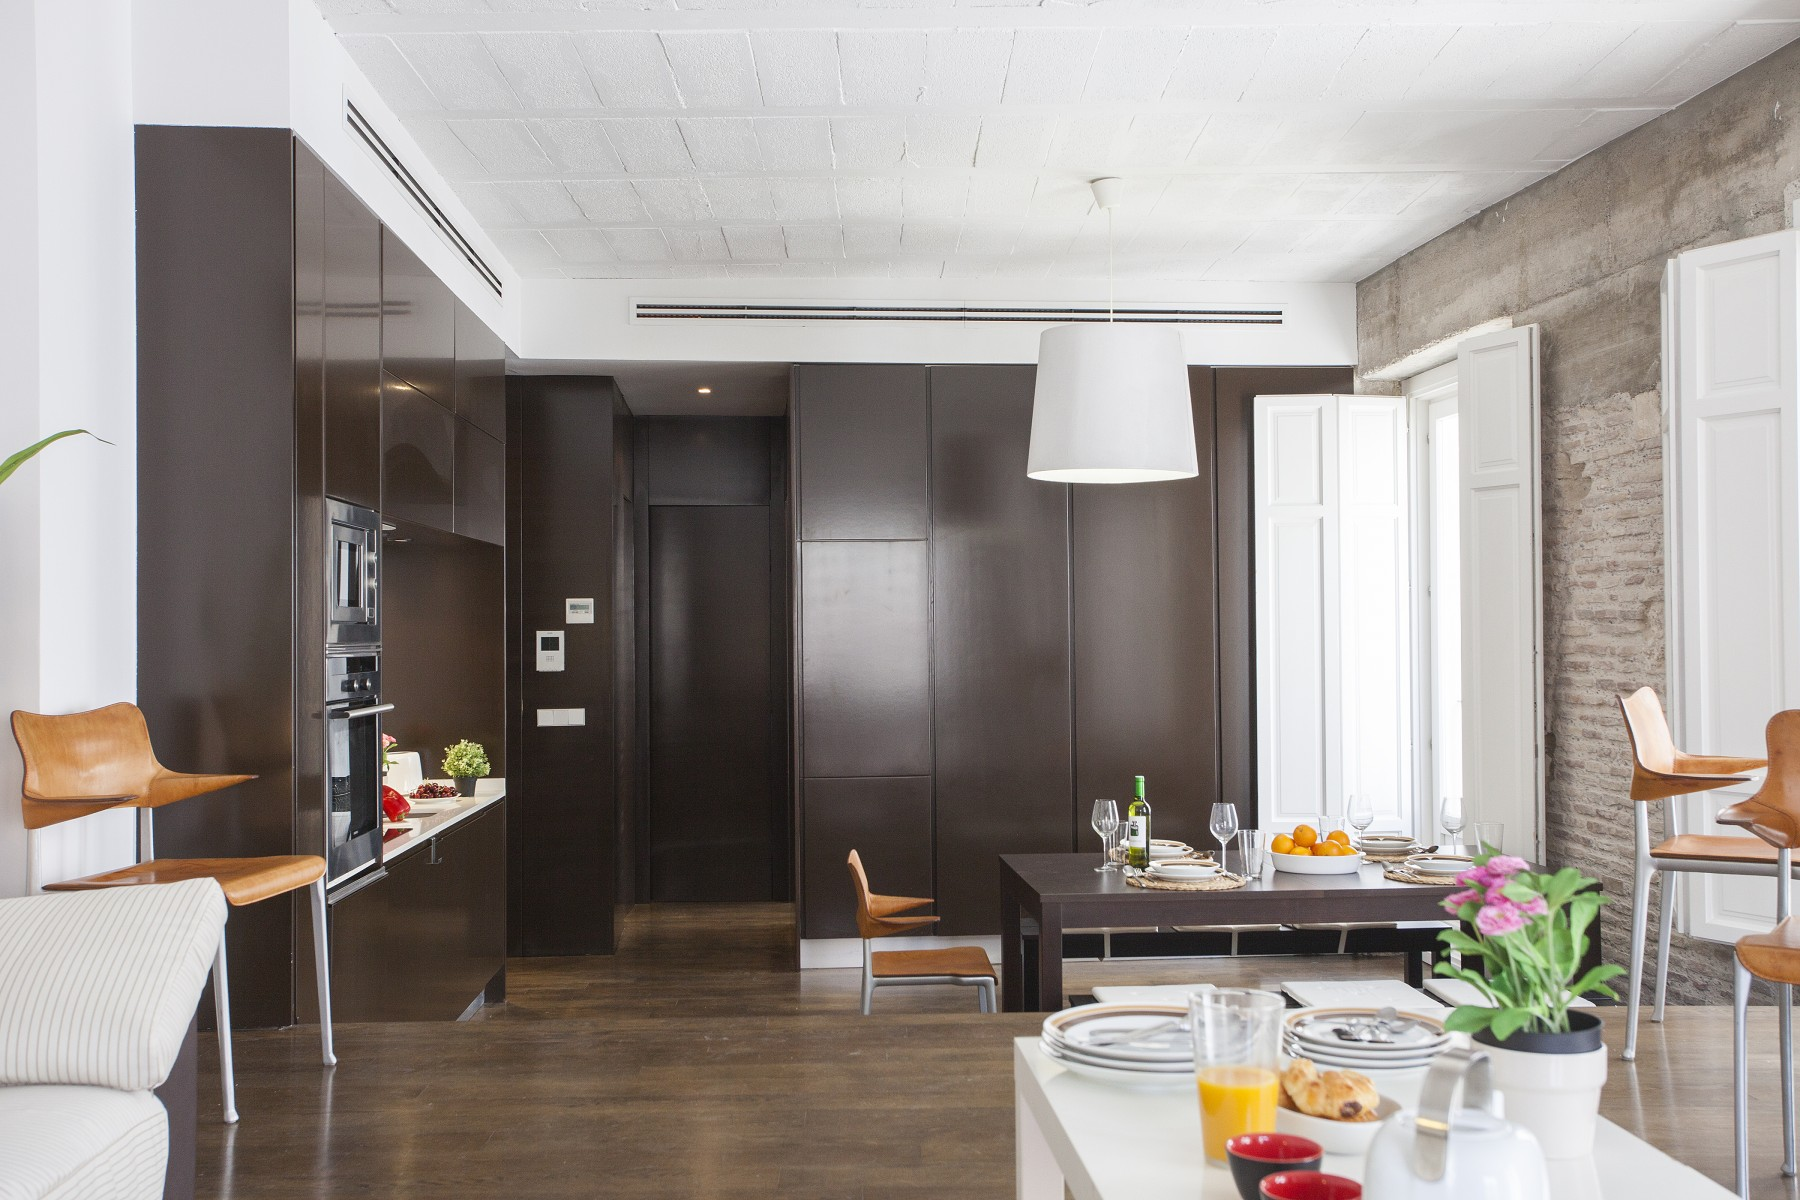 Apartments in valencia calatrava - Singular kitchen valencia ...